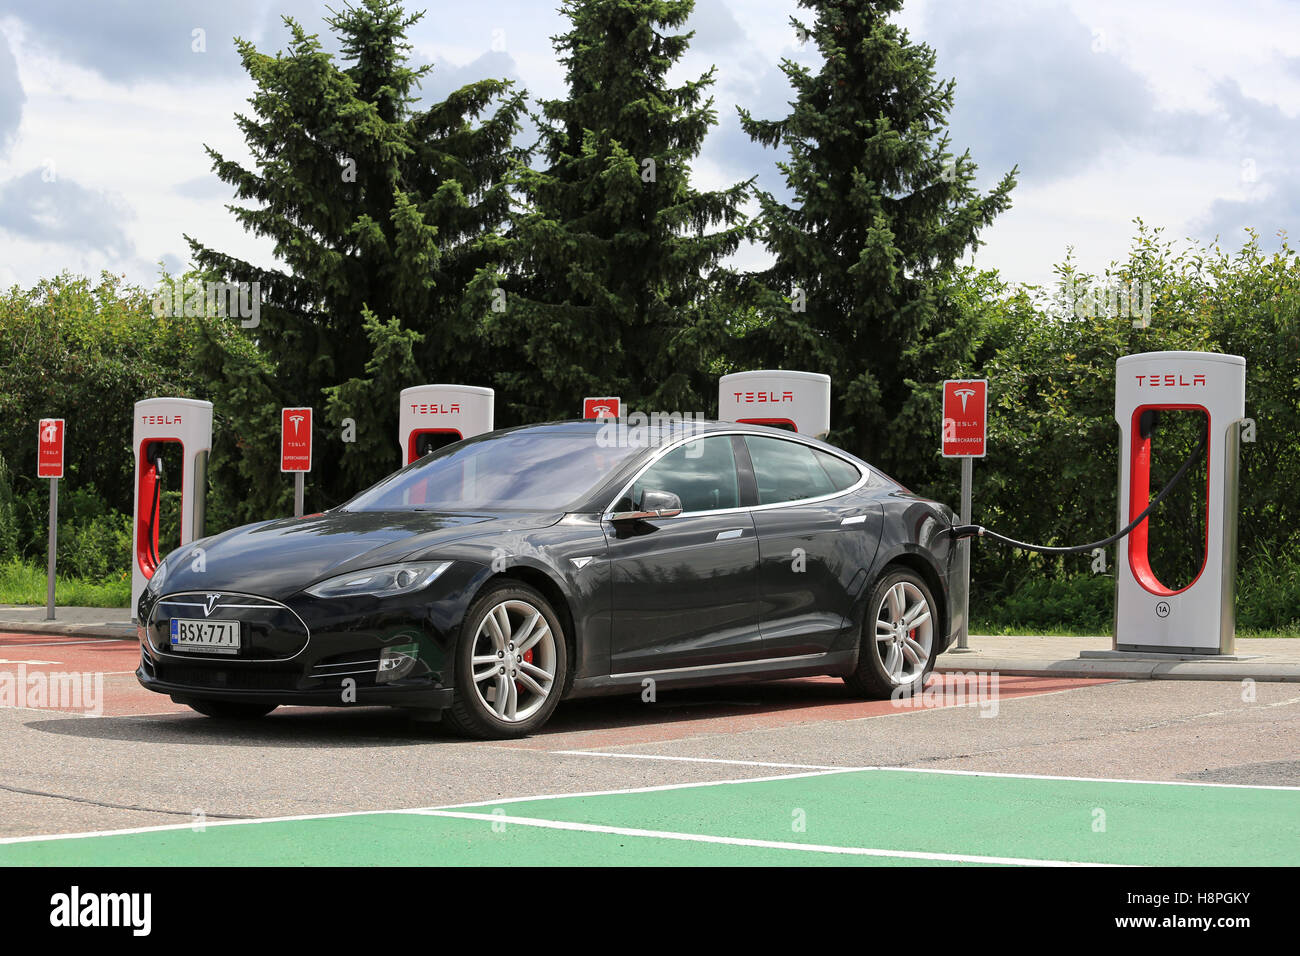 PAIMIO, FINLAND - JULY 17, 2016: Black Tesla Model S Electric car charging at Tesla Supercharger station in Paimio, Stock Photo